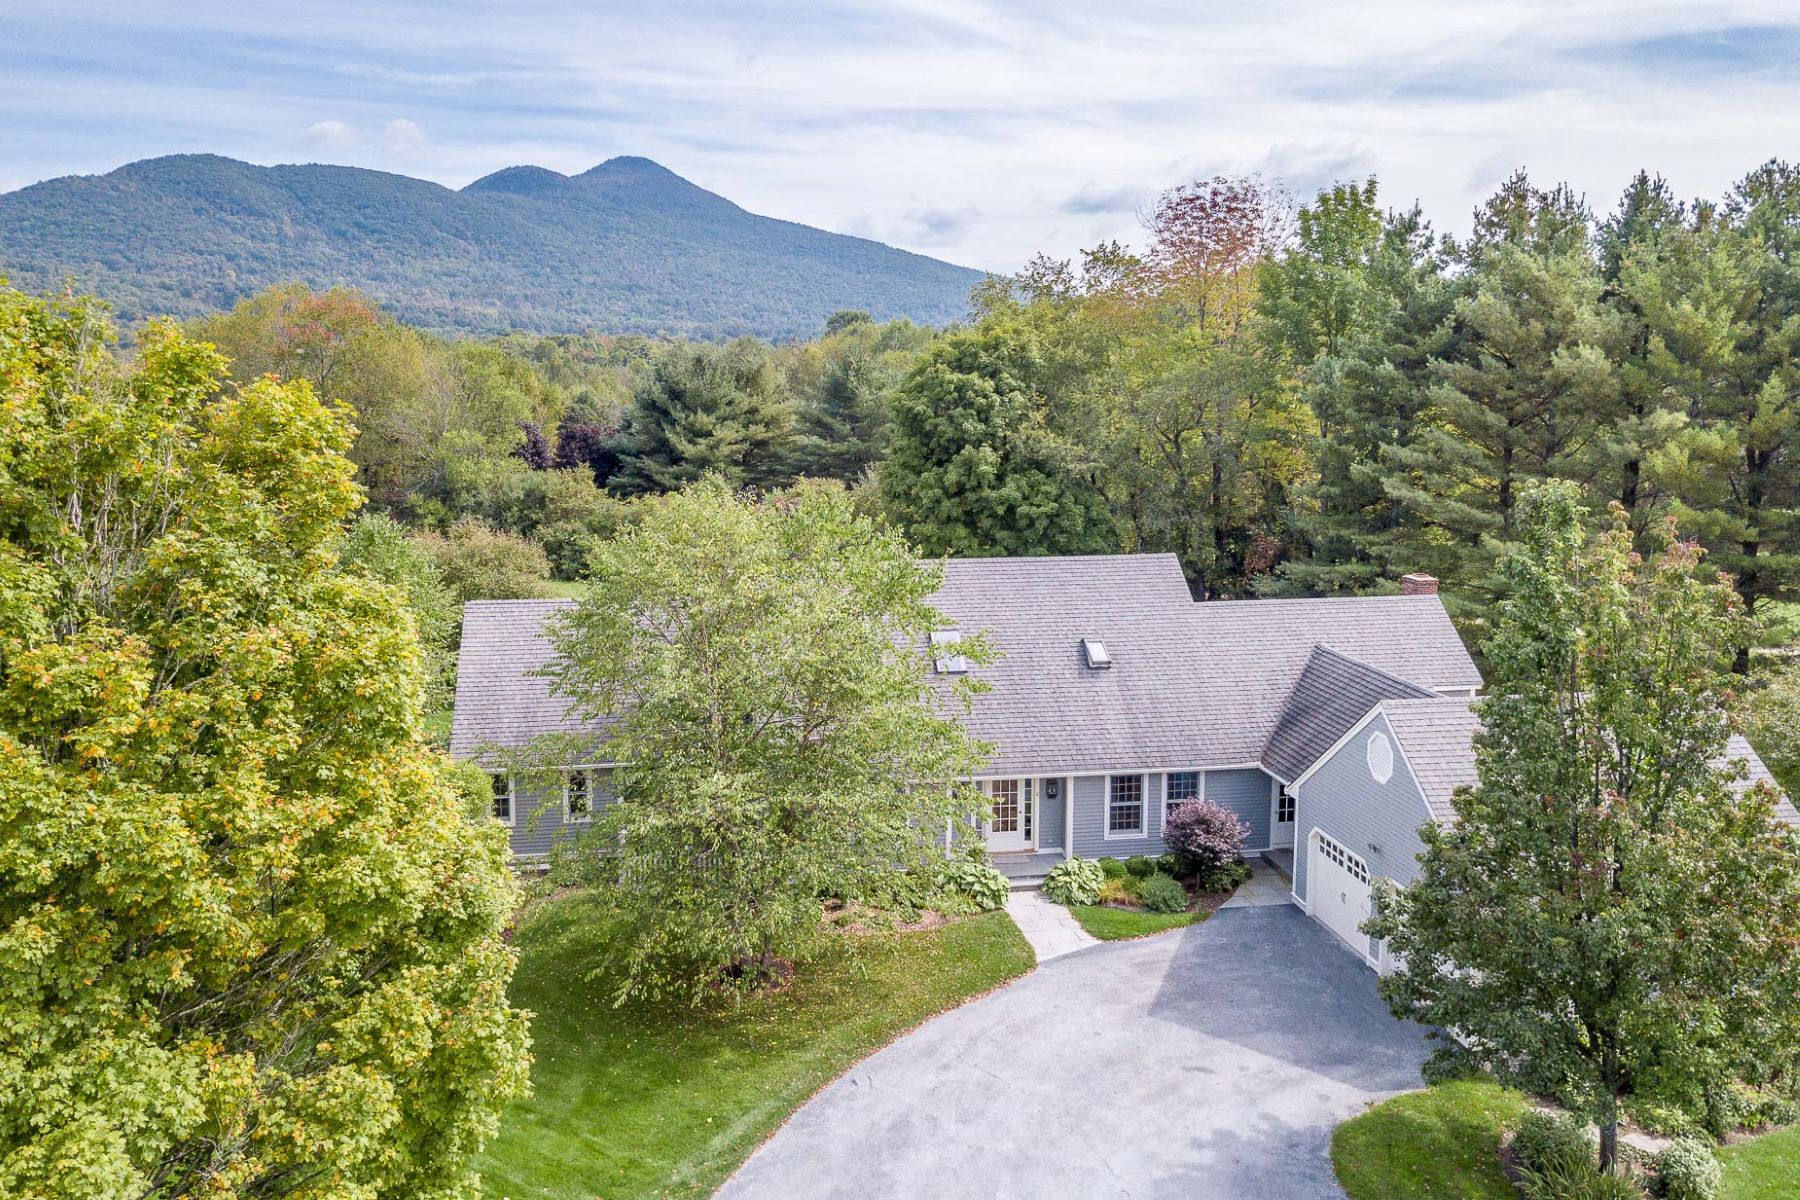 Single Family Home for Sale at Dorset West Road Contemporary 6 Farwell Ln Dorset, Vermont 05251 United States